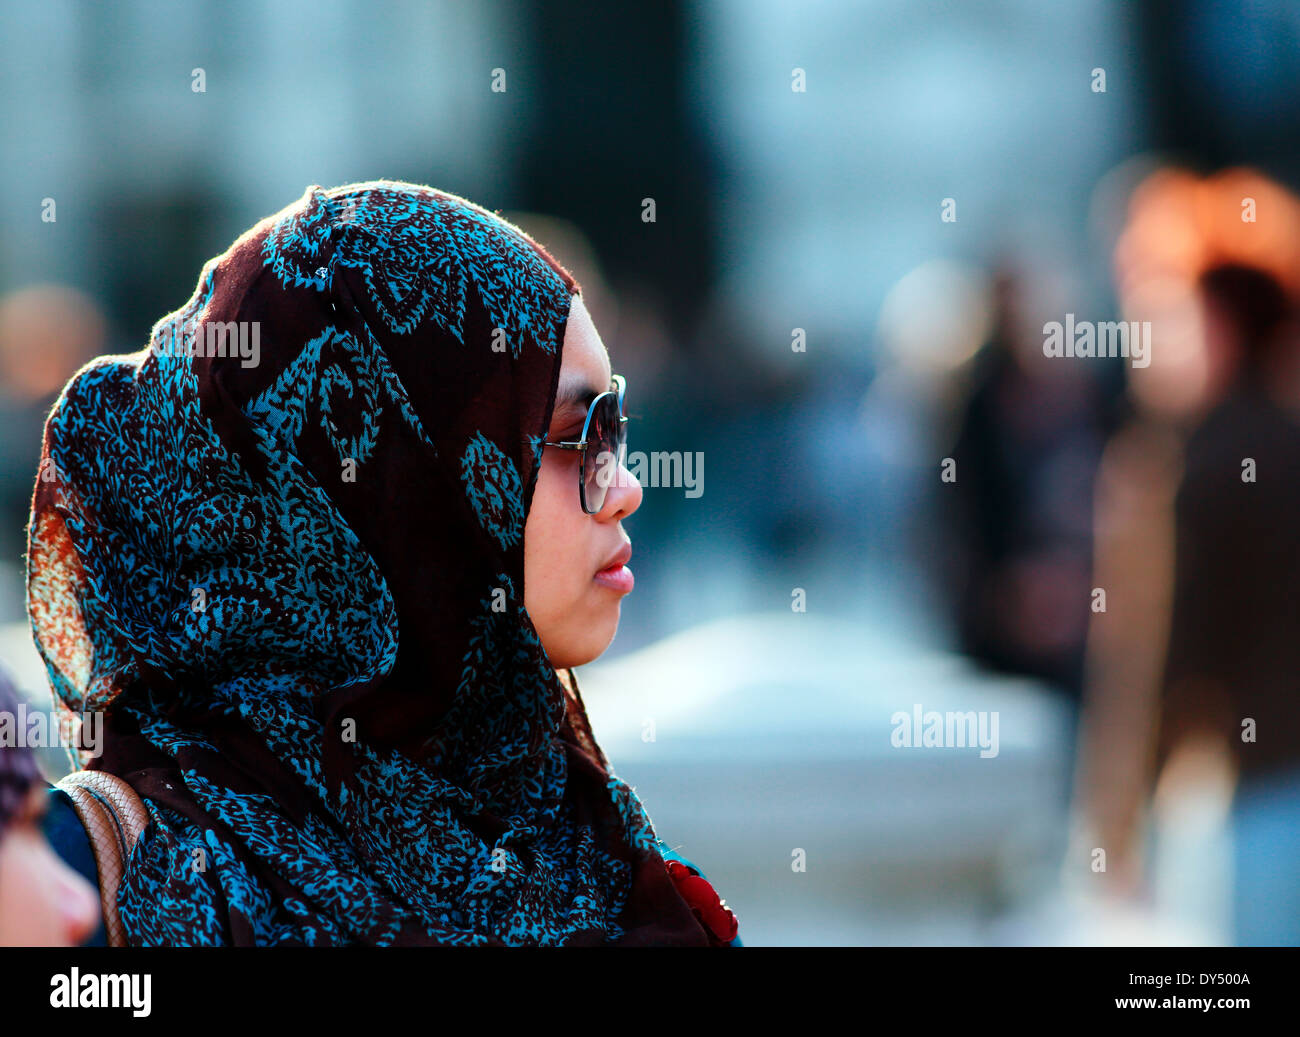 Muslim girl in head scarf - Stock Image